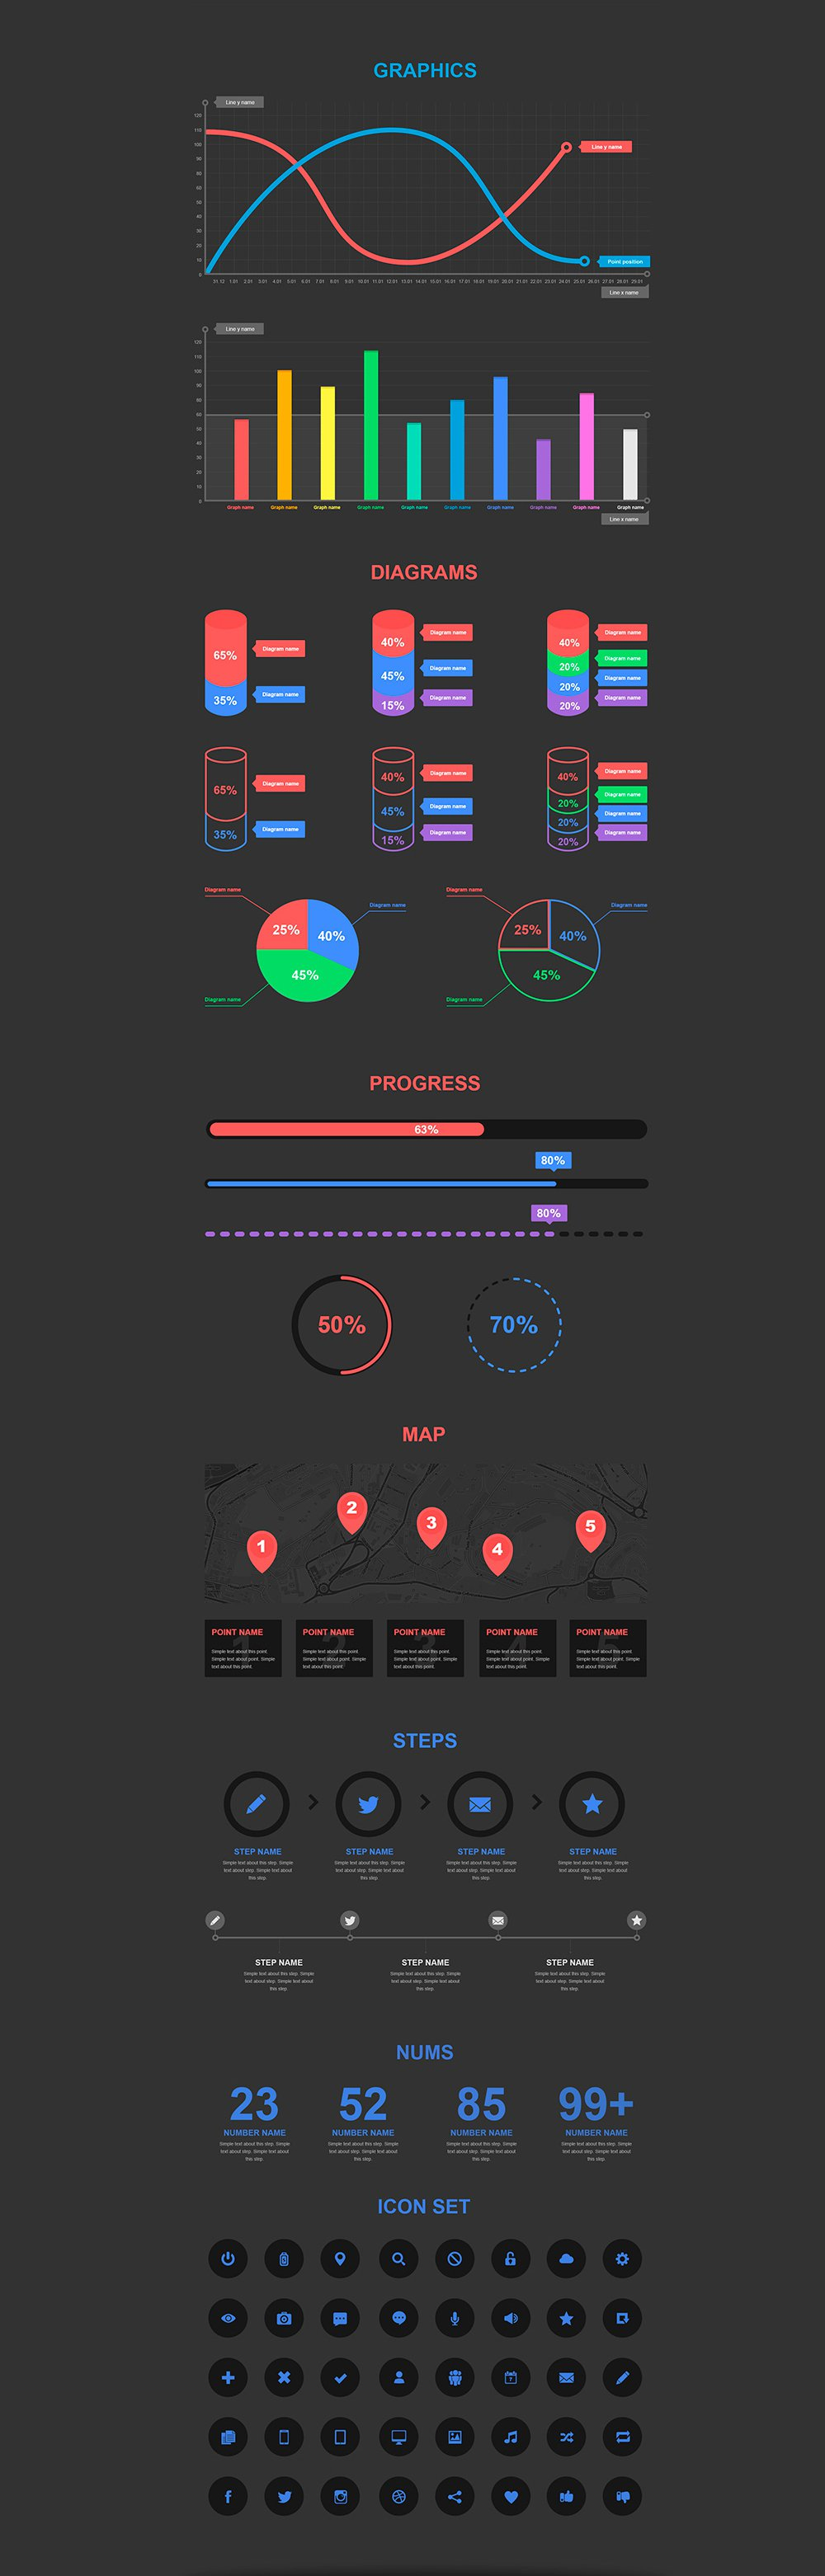 Free Infographic Elements PSD Infographic, Icon set, Diagram